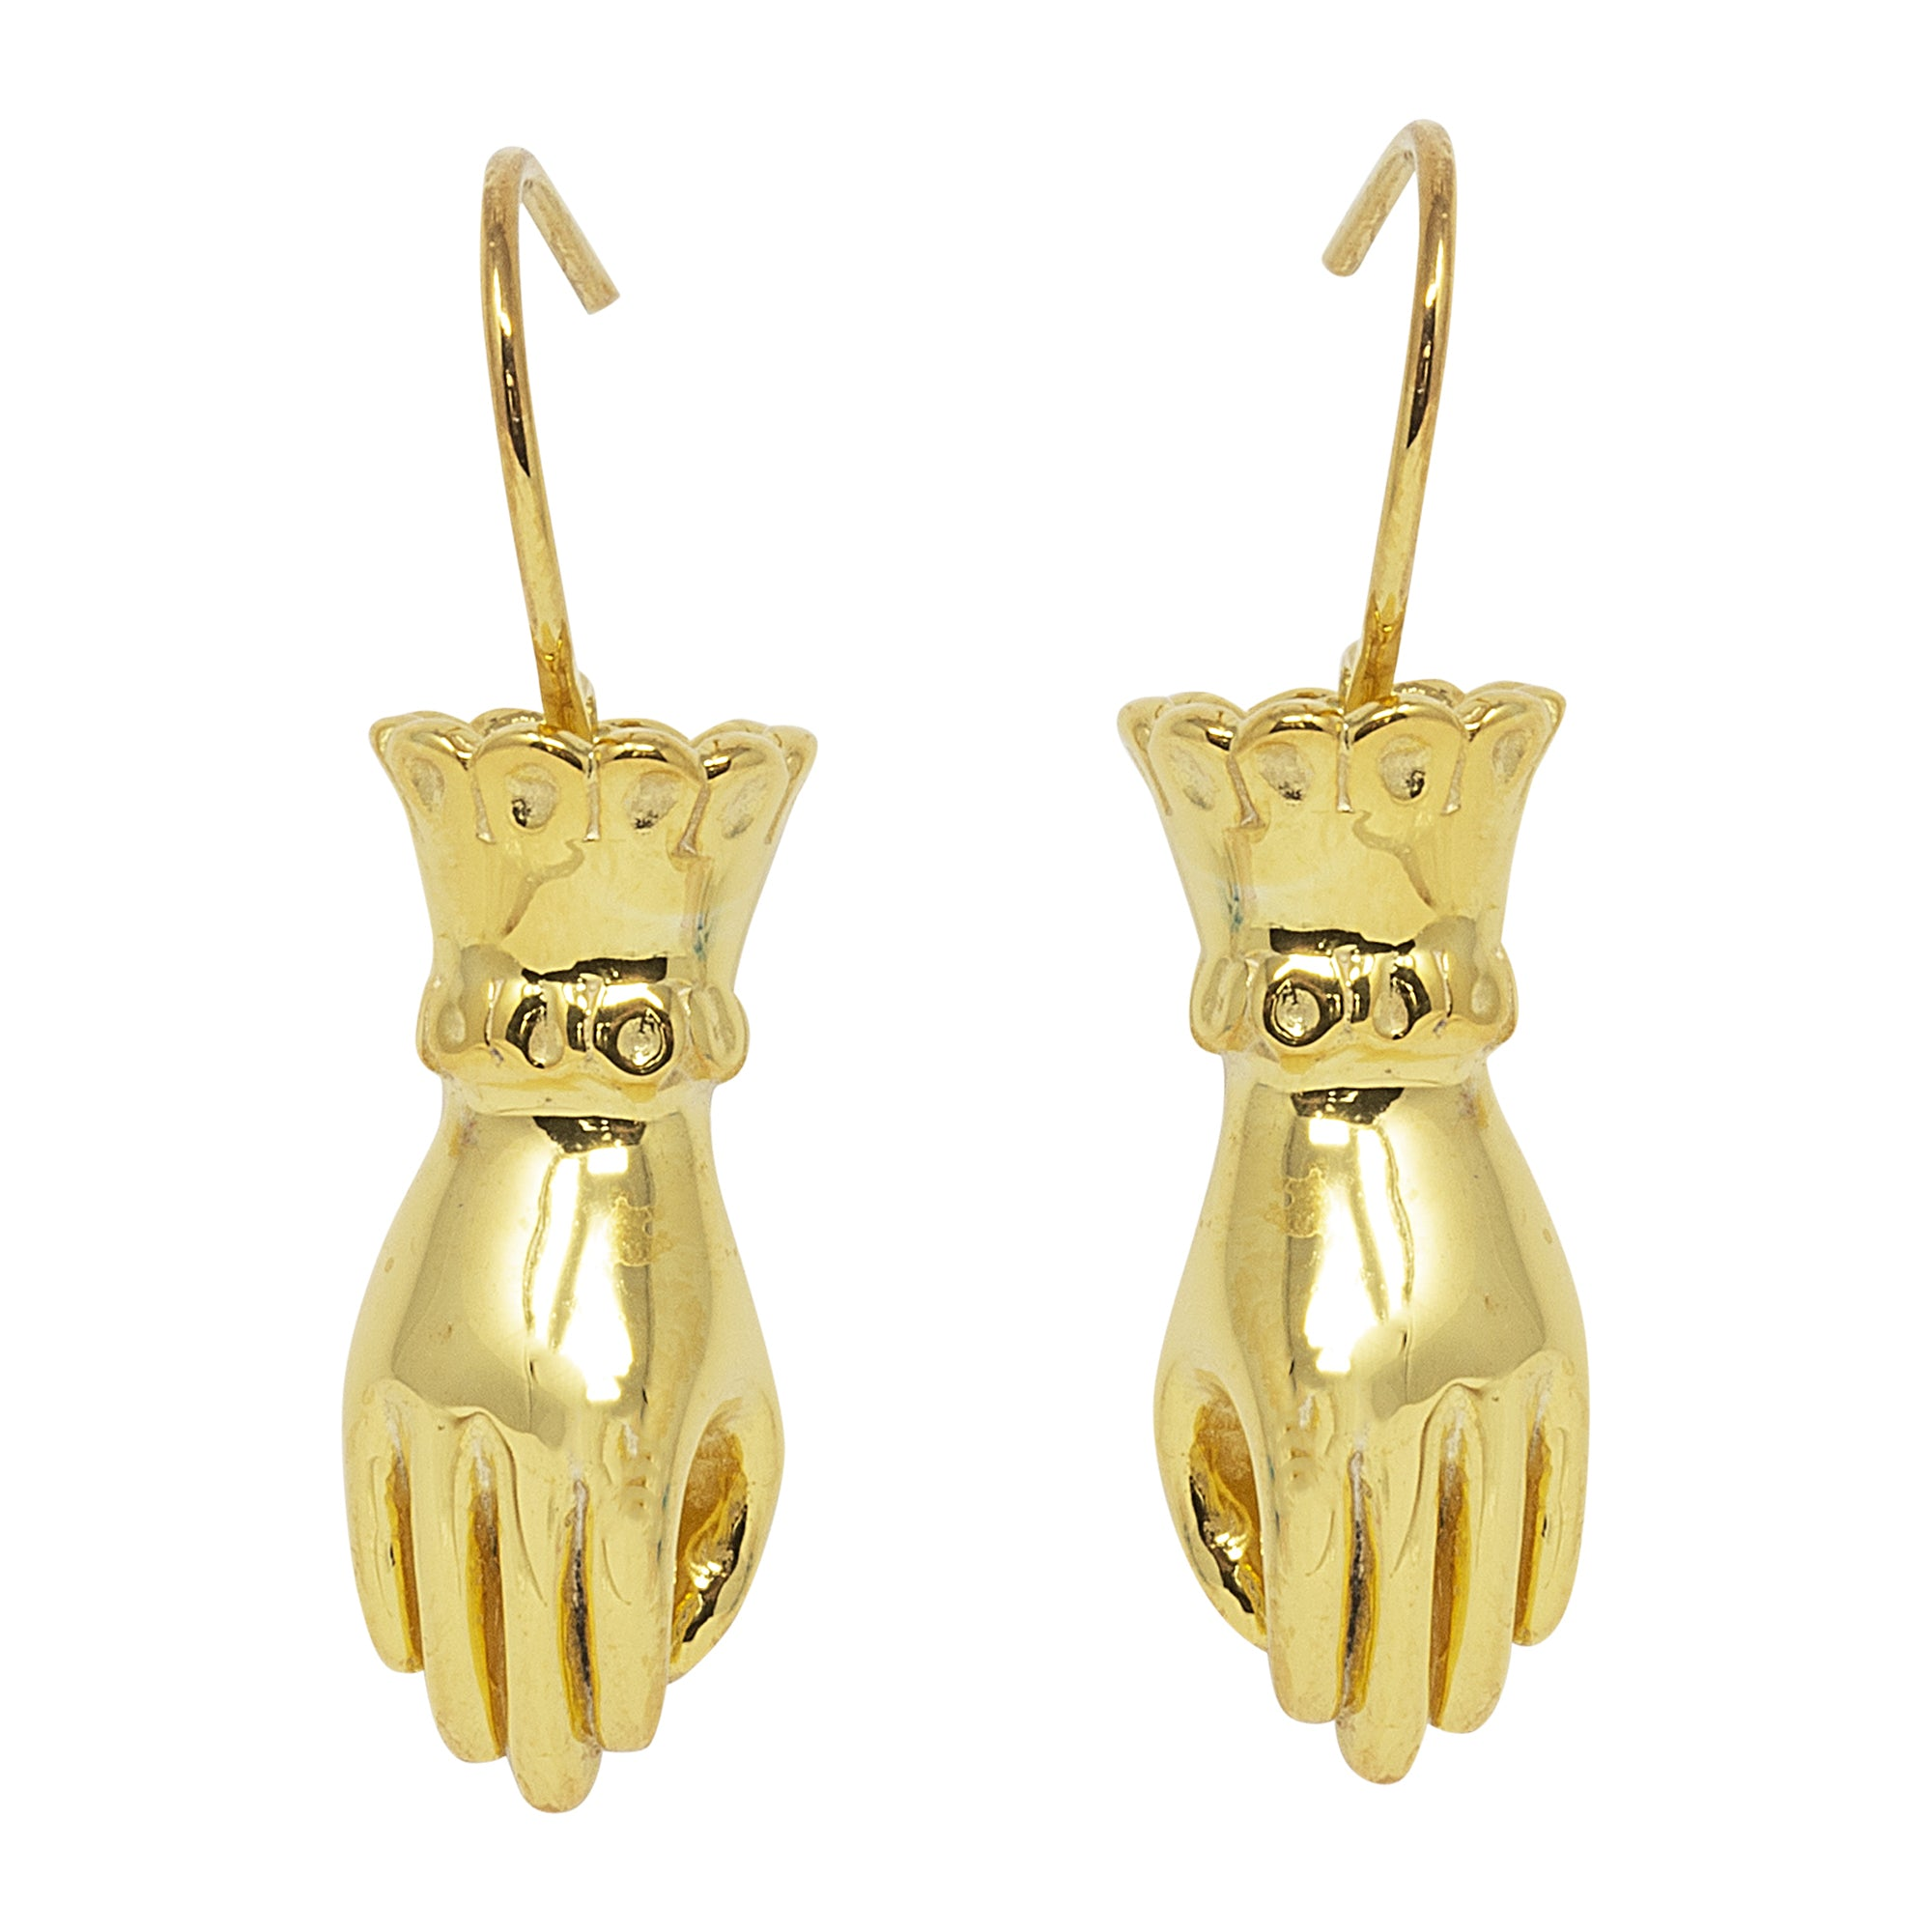 Silver Fortune Teller Hand Earrings by Pearl & Queenie